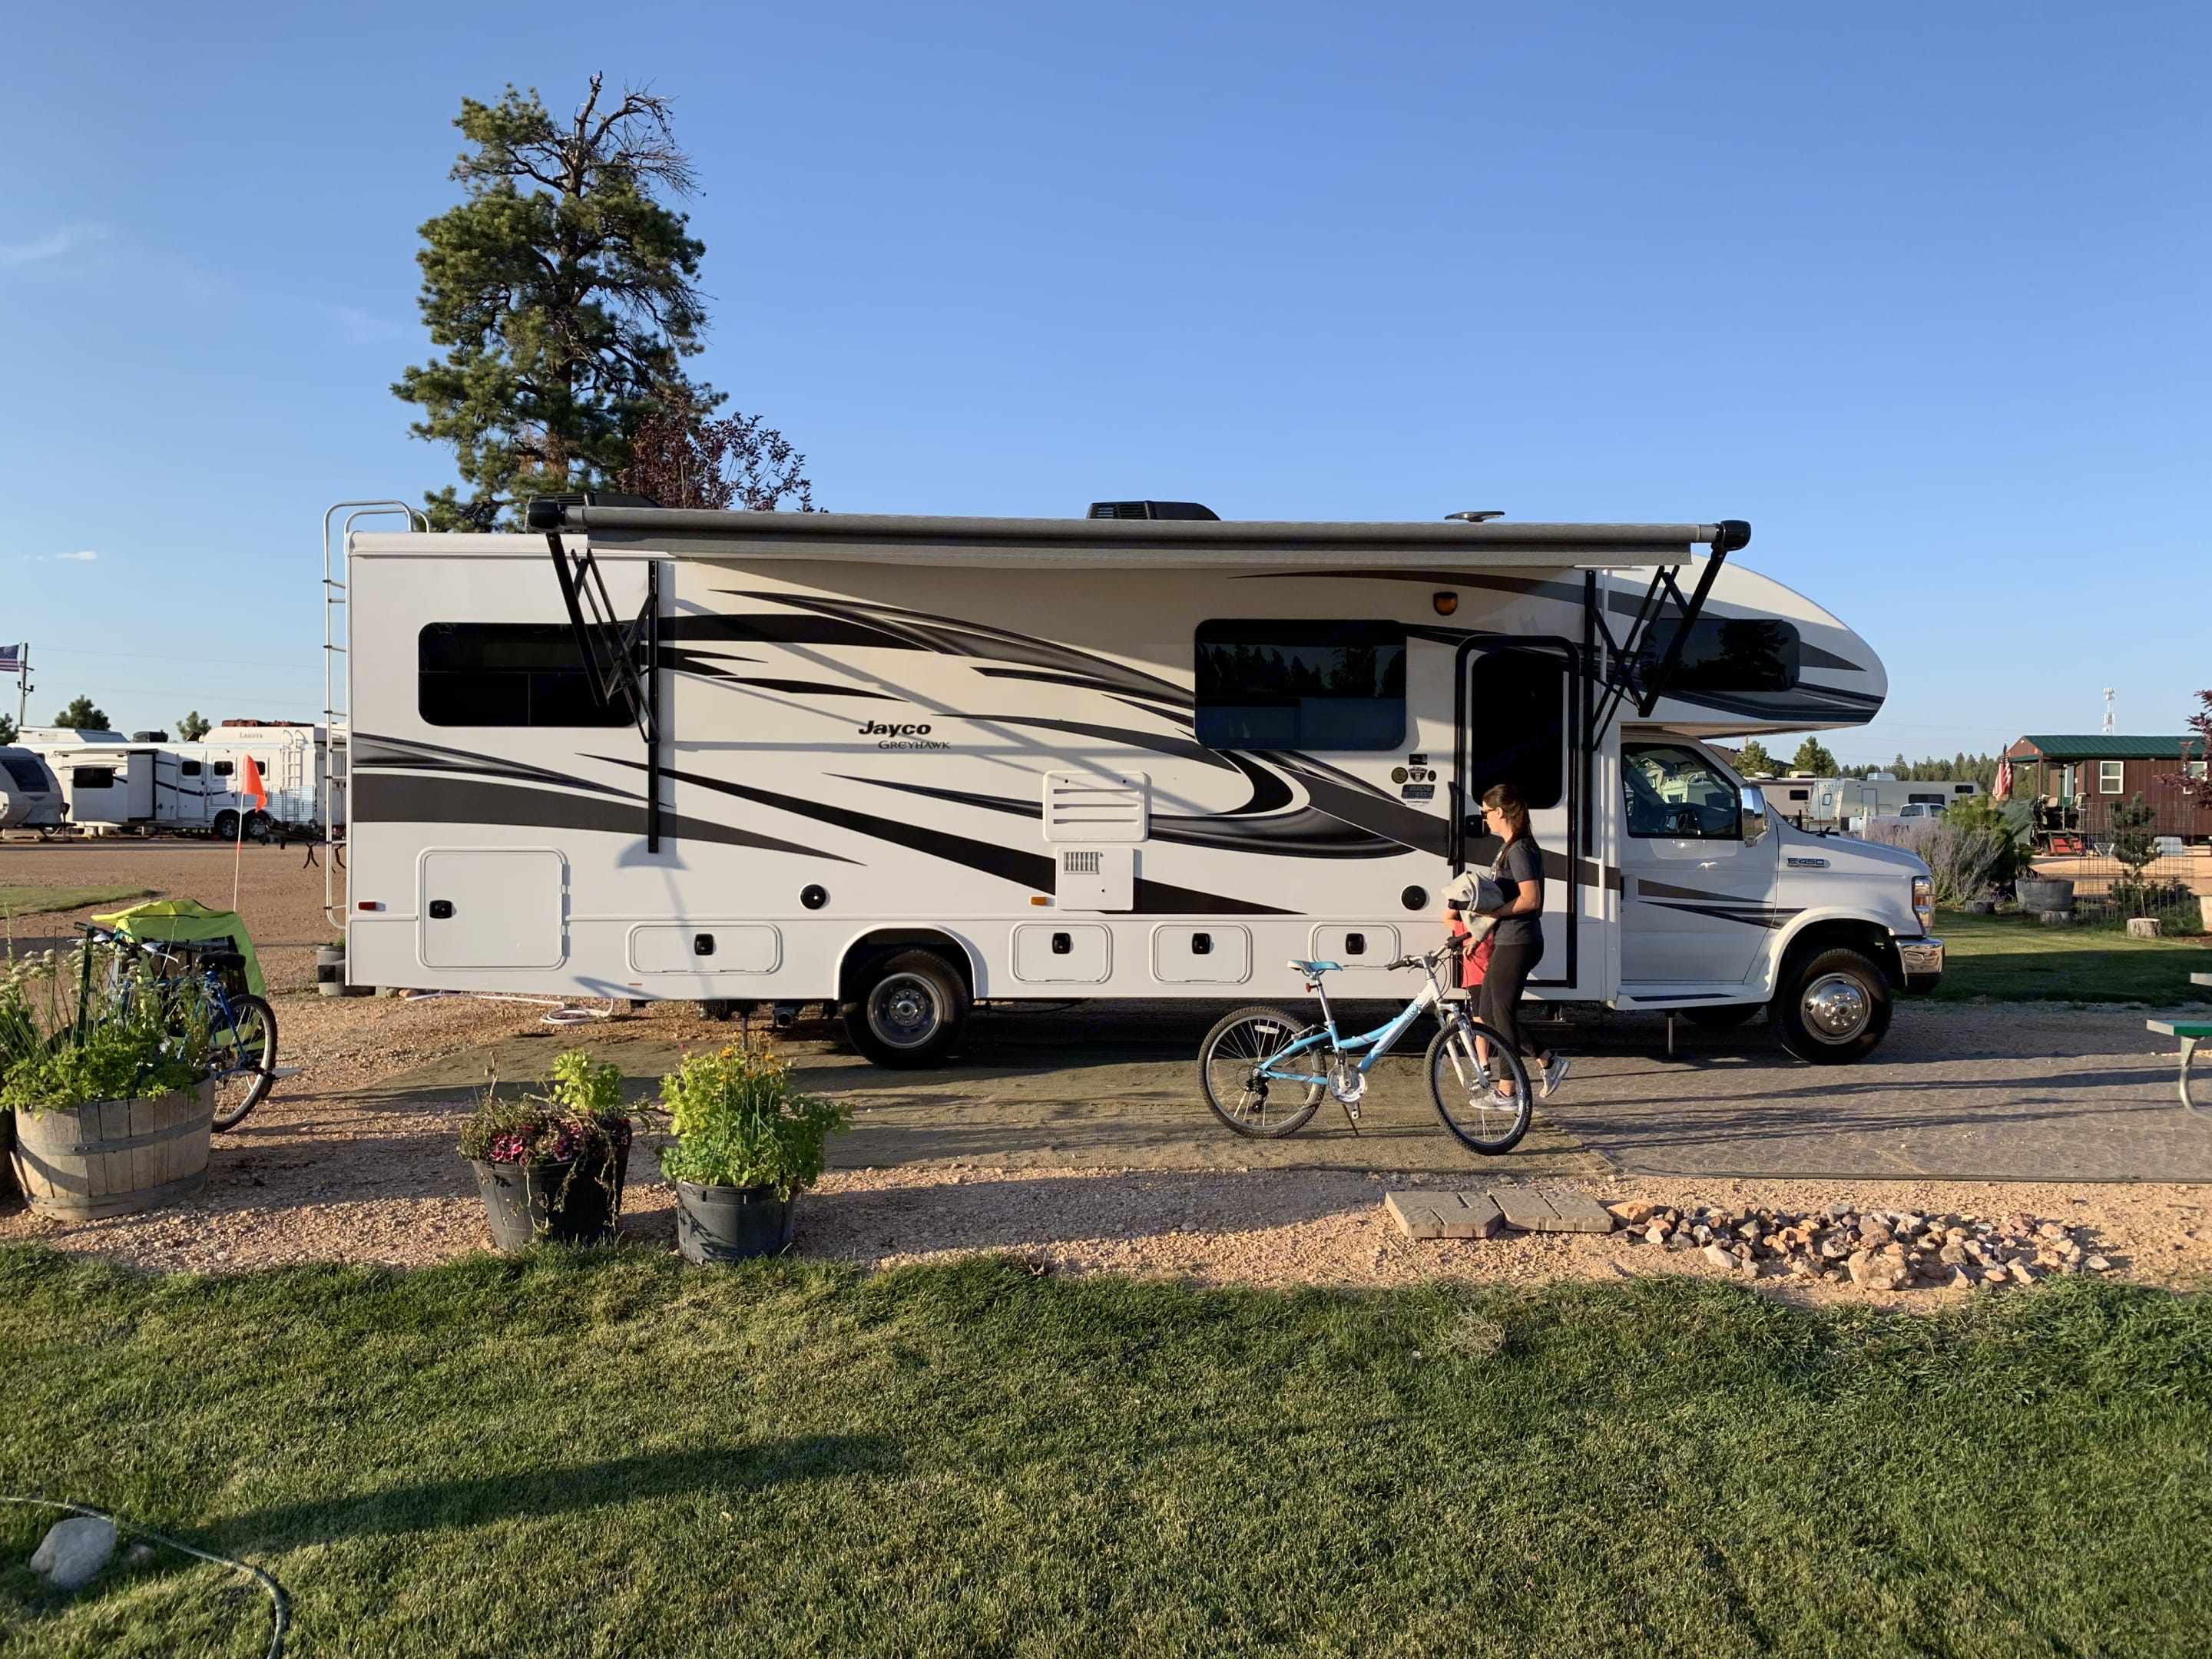 Perfect size for a big family or just a couples get away, our Jayco RV is fun to drive, and has many upgrades that will make your trip comfy and fun.. Jayco Greyhawk 2019